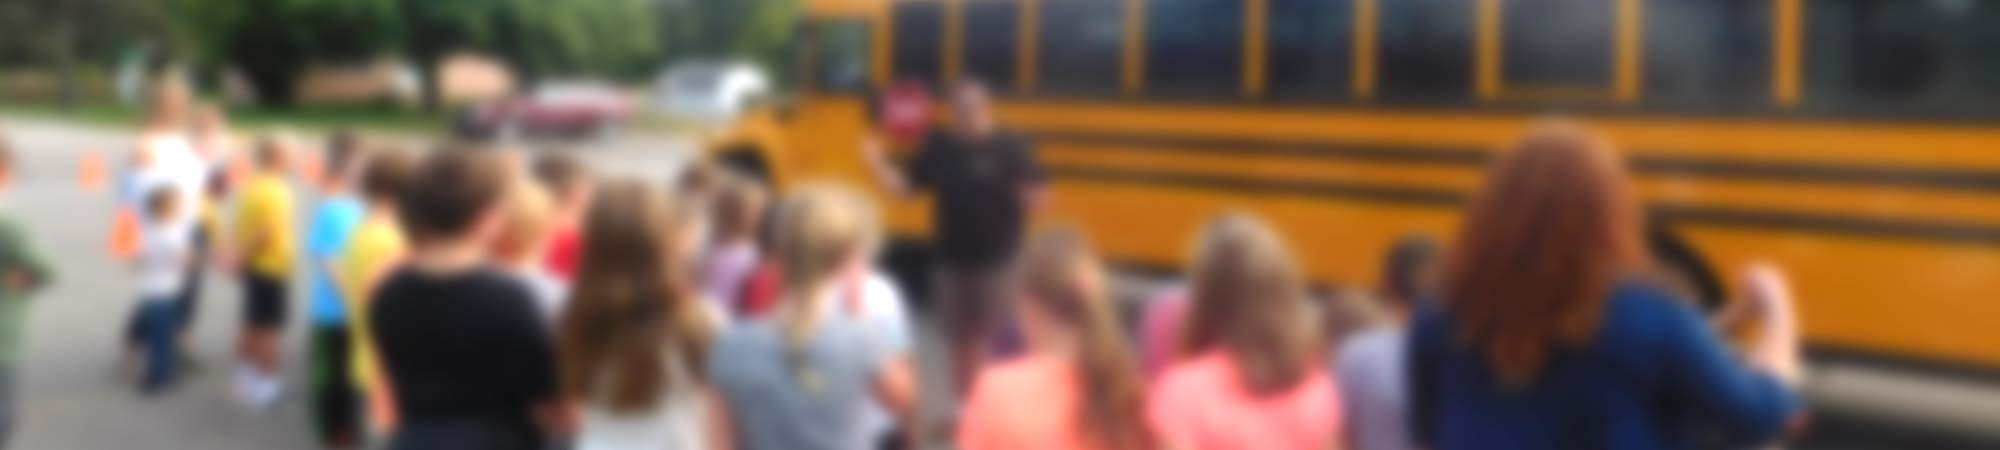 Blurred photo of an Aksamit bus driver performing a school bus safety class with a group of children